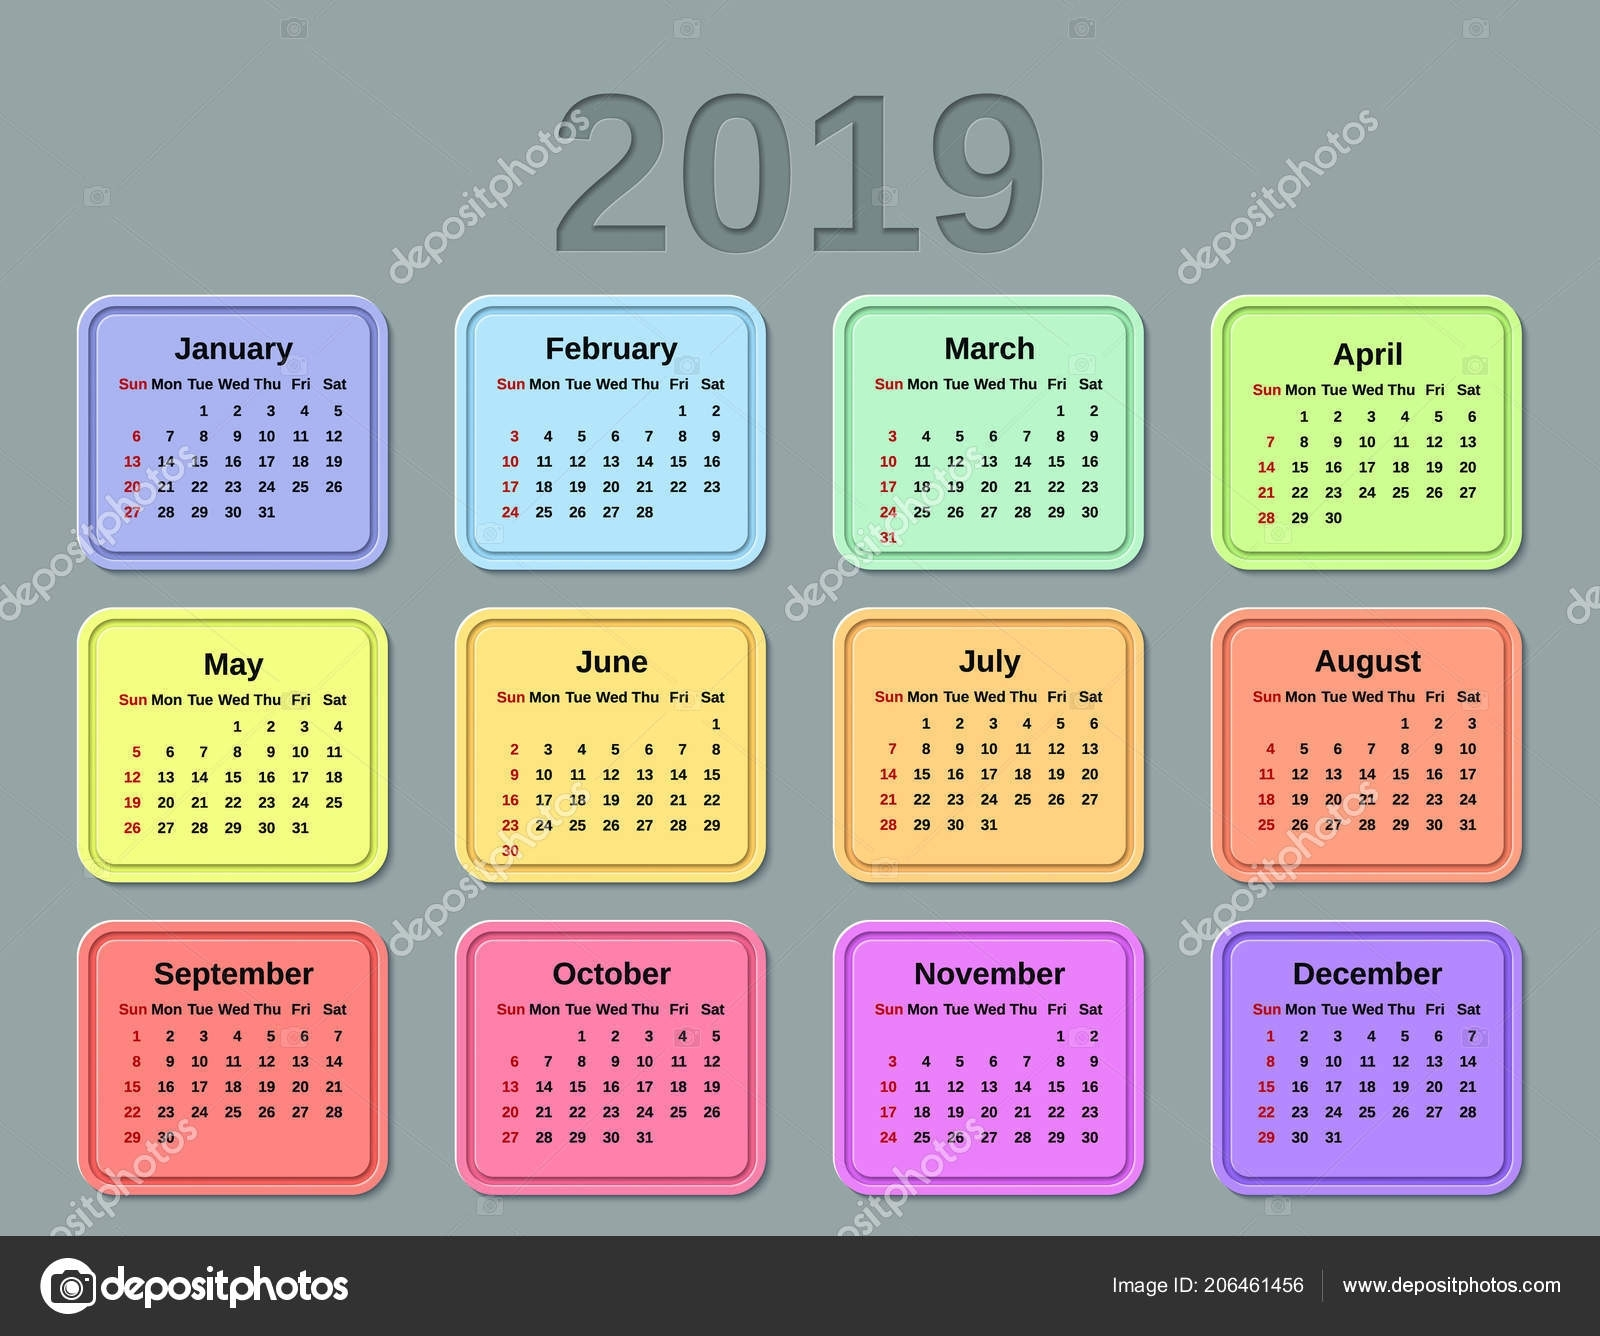 2019 Calendar Months Year Vector Graphics Week Starts Sunday Design in Calendar Months Of The Year